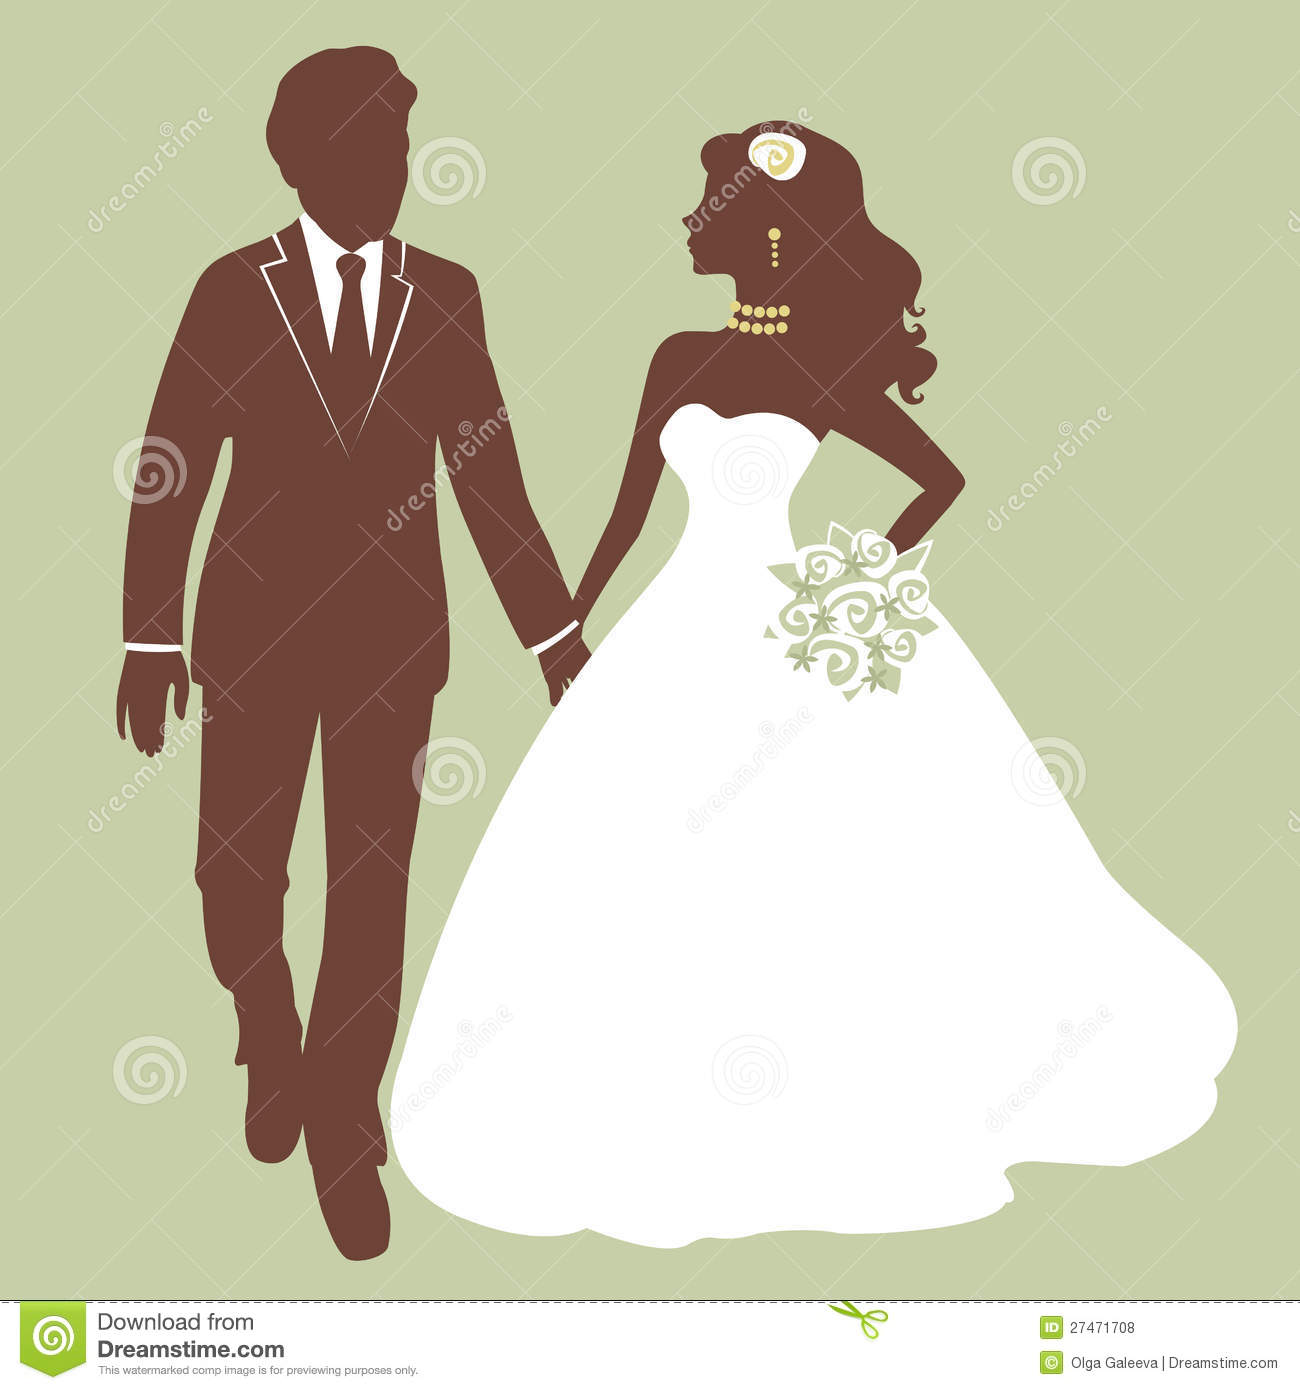 Swell Beautiful Bride And Groom Running Stock Vector Download Free Architecture Designs Scobabritishbridgeorg